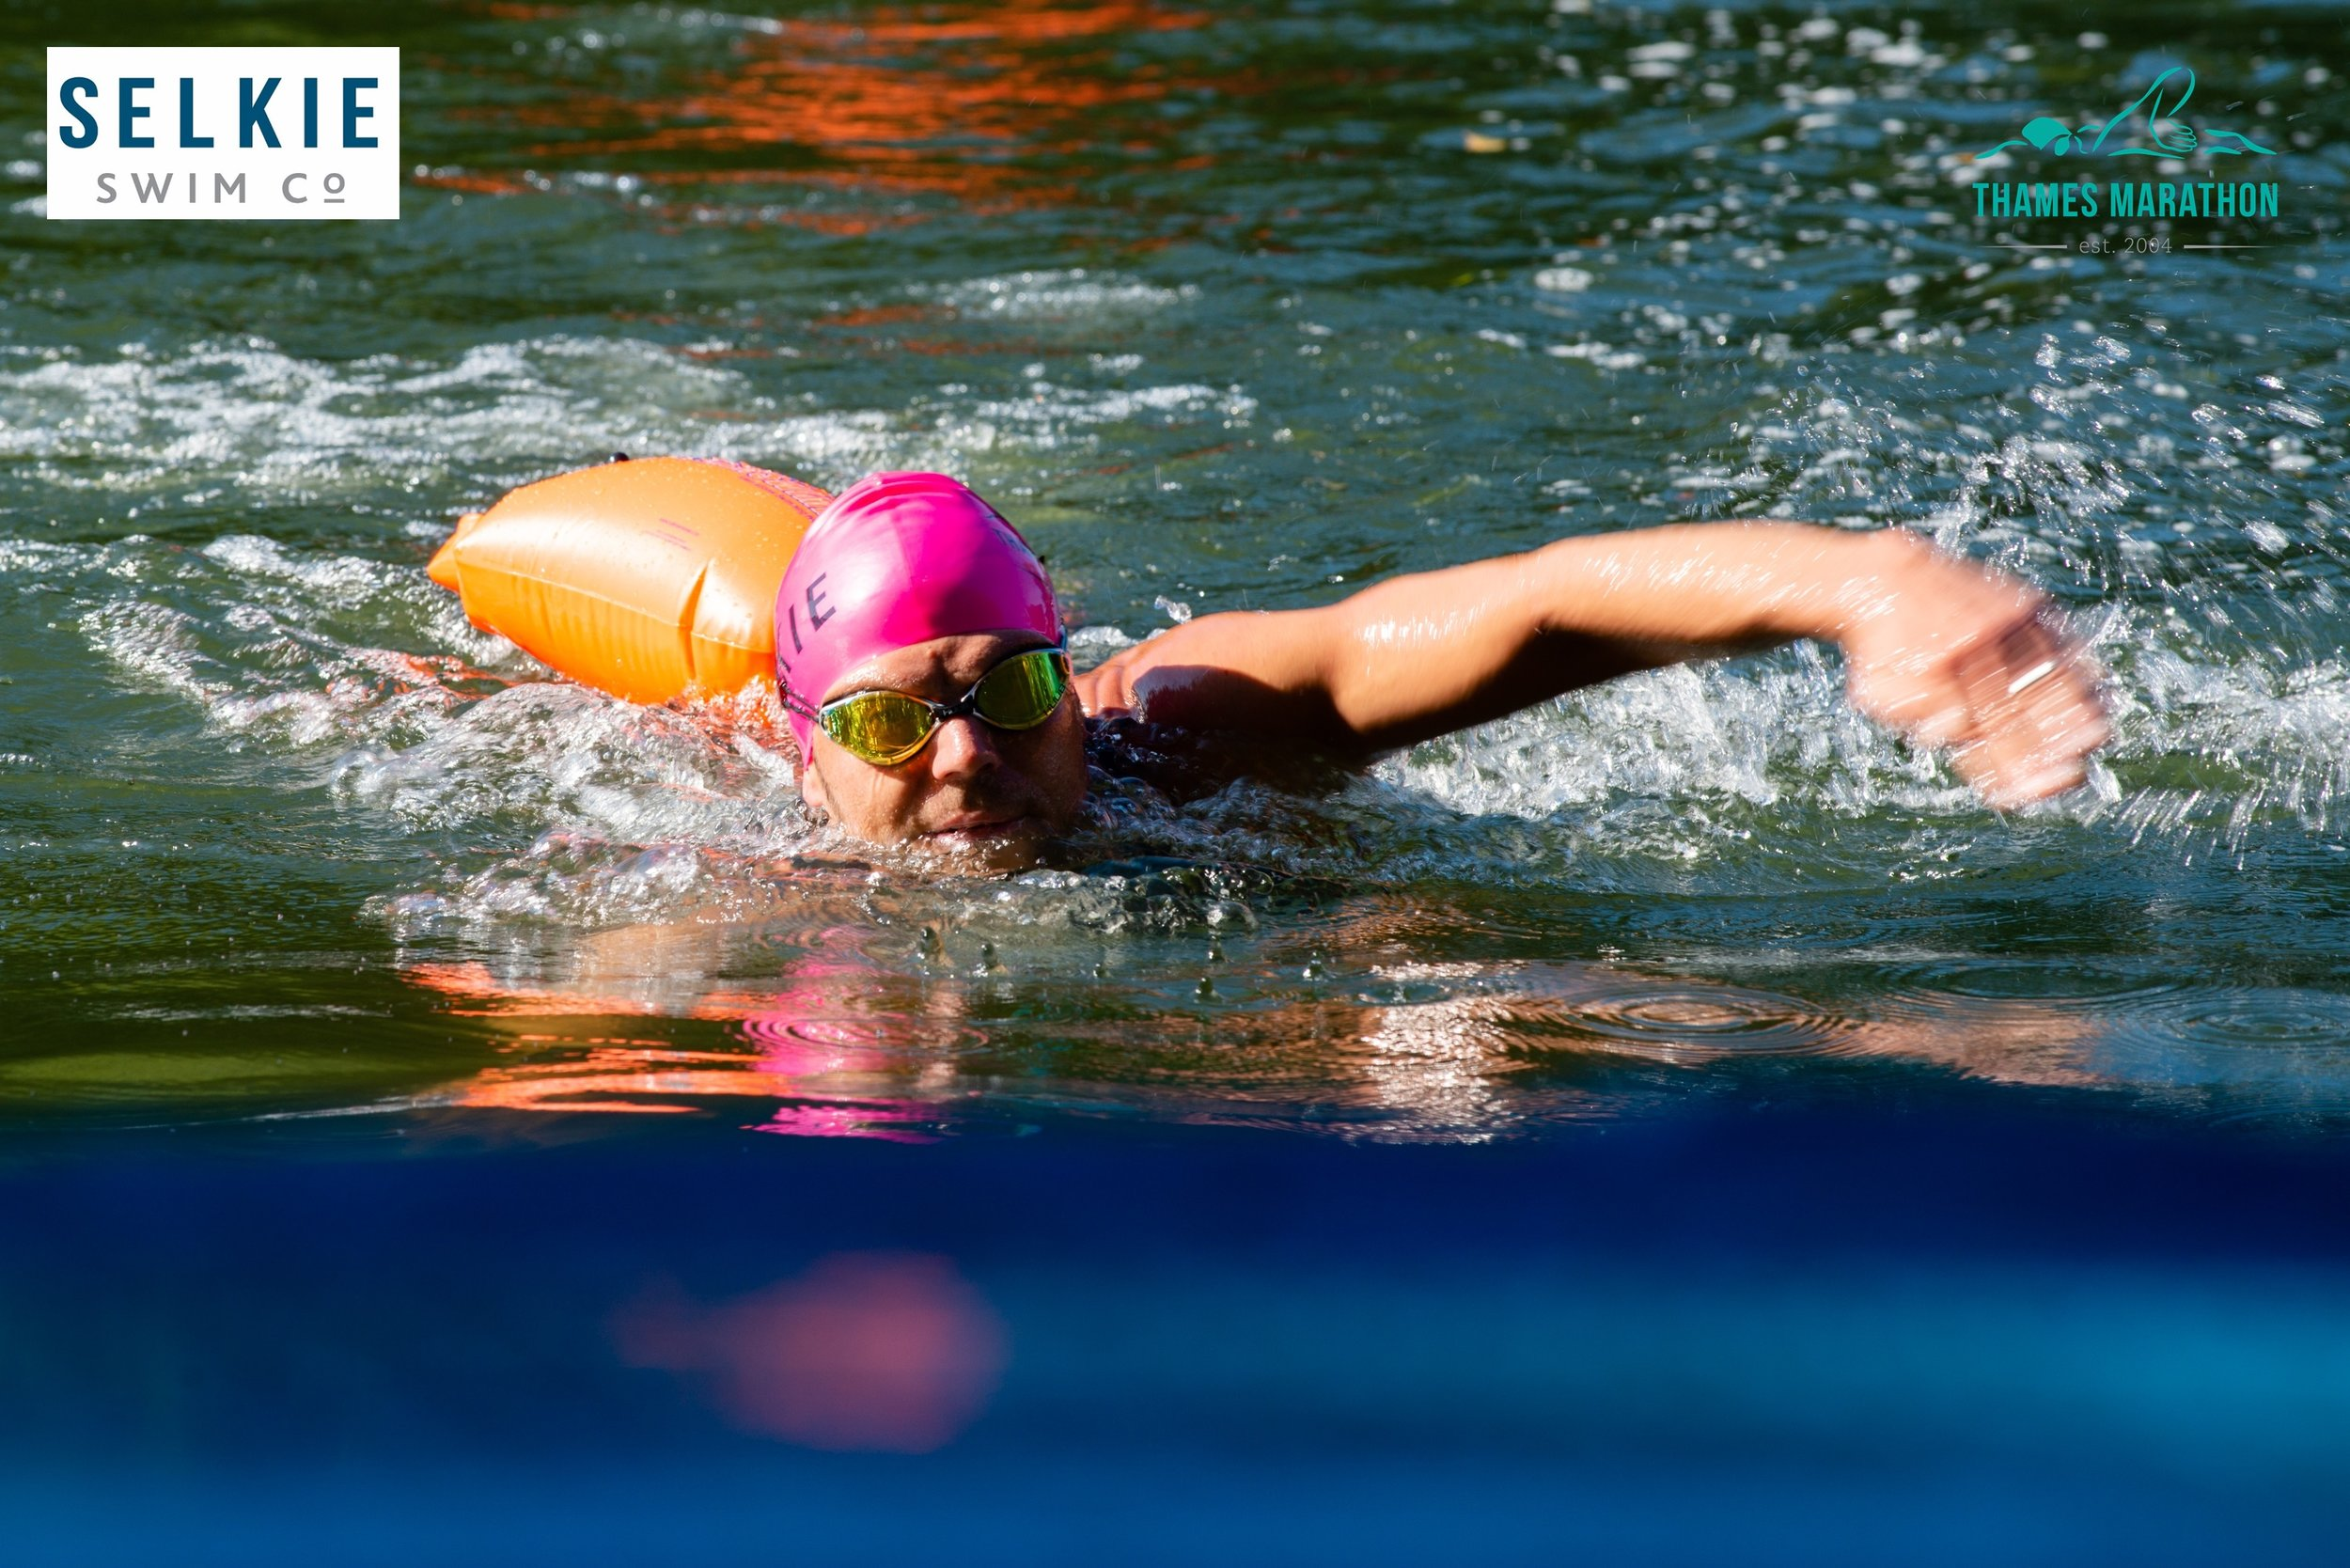 A shot of me at the end of the 6K leg of the swim; approximately 10K in the race.